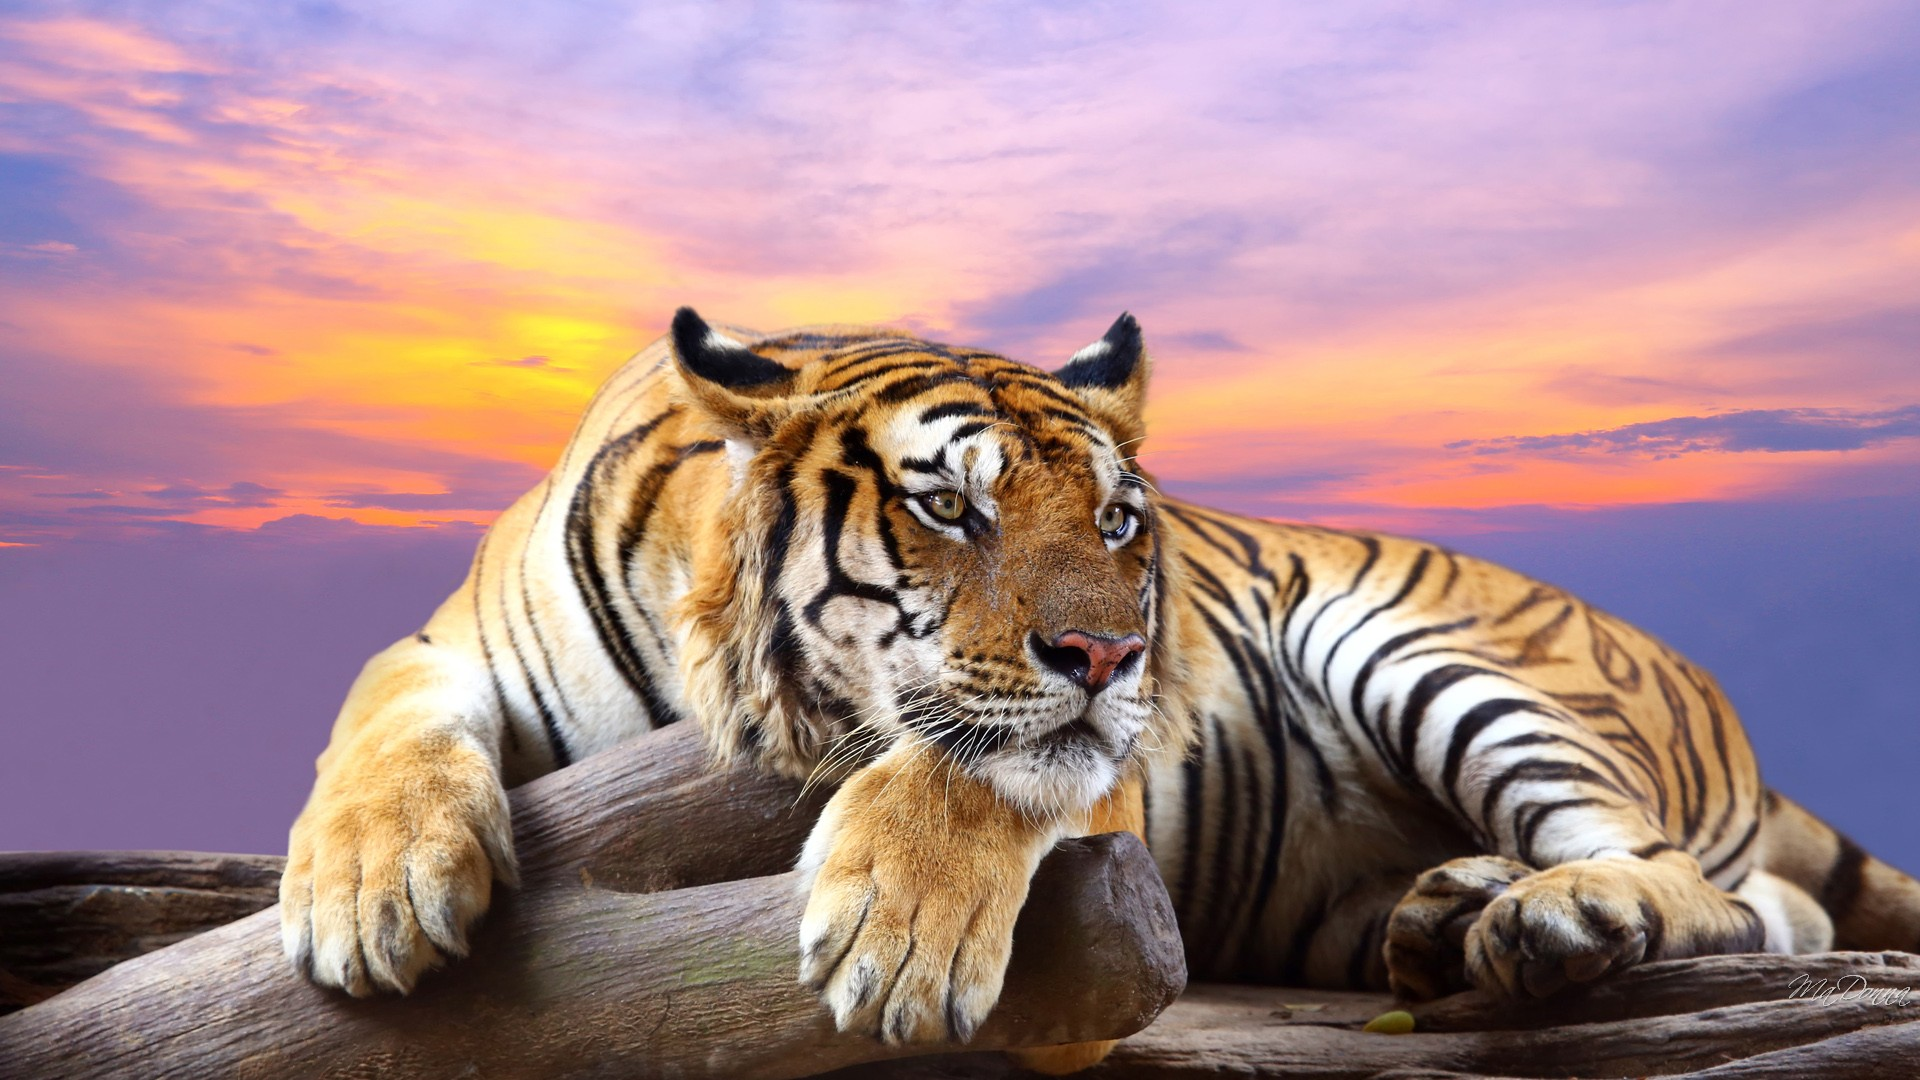 Bengal Tiger Wallpaper Wallpaper Free Download 1920x1080